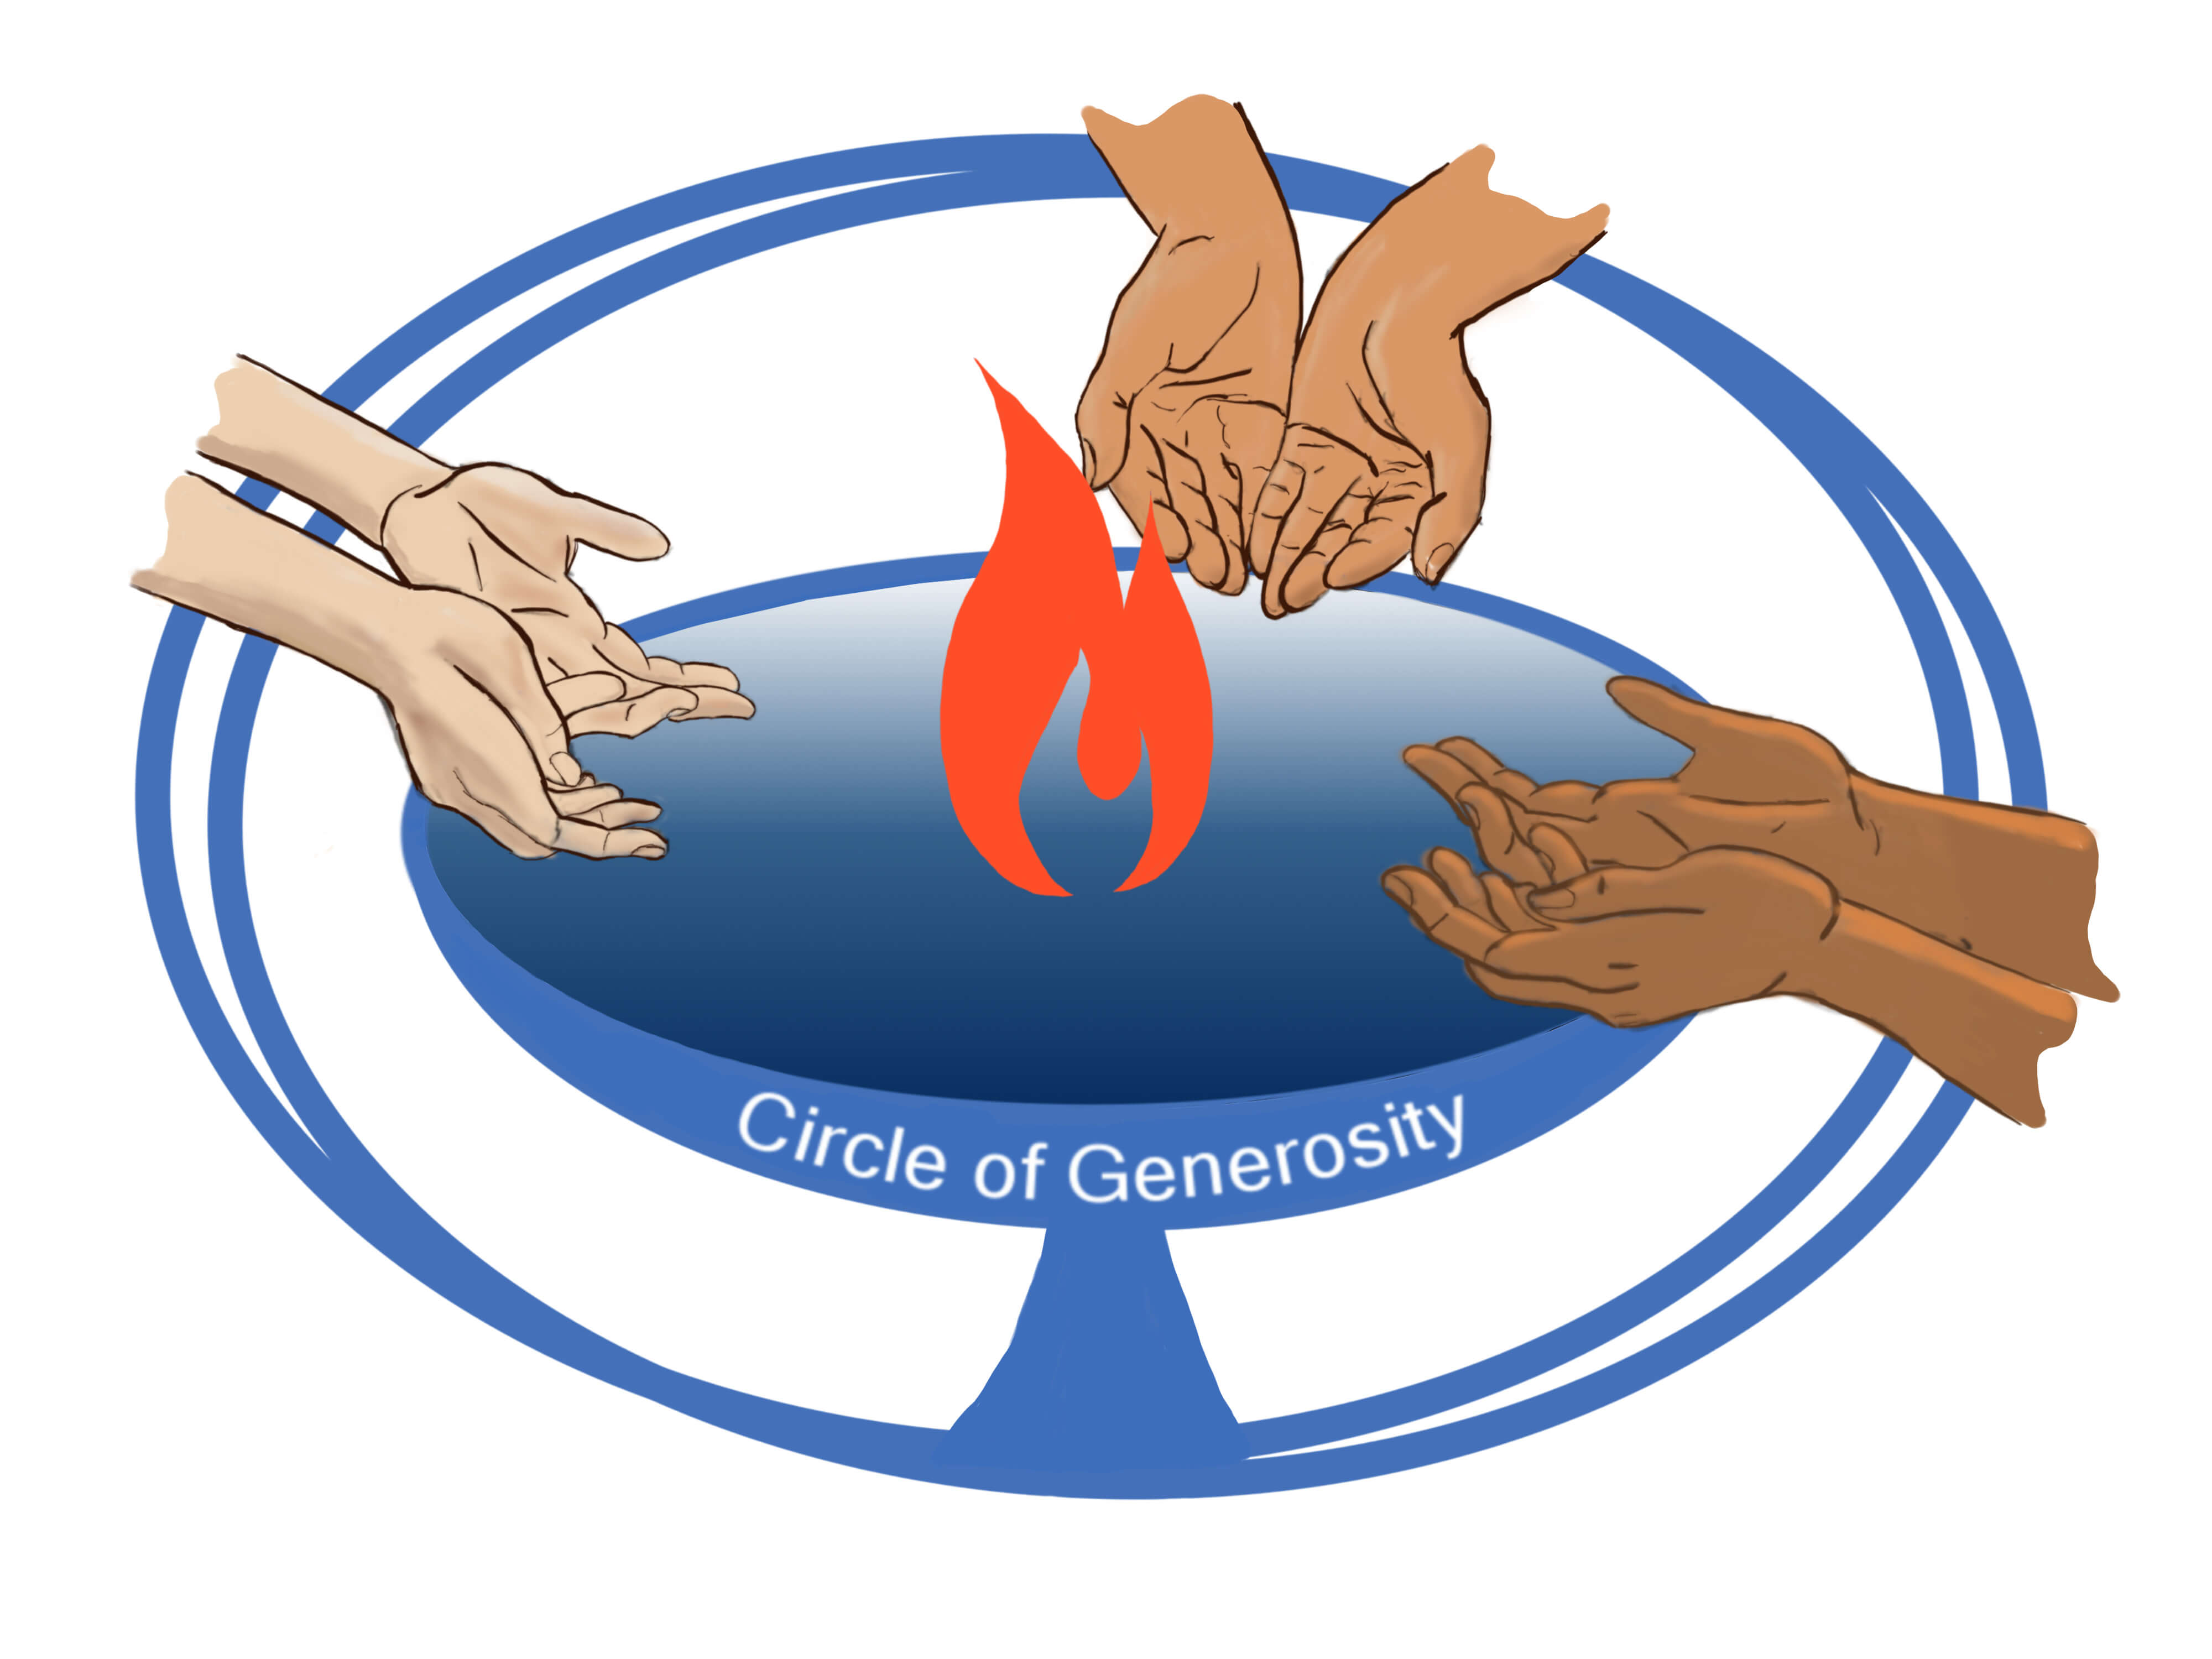 Generosity_D_Giving_Hands 1